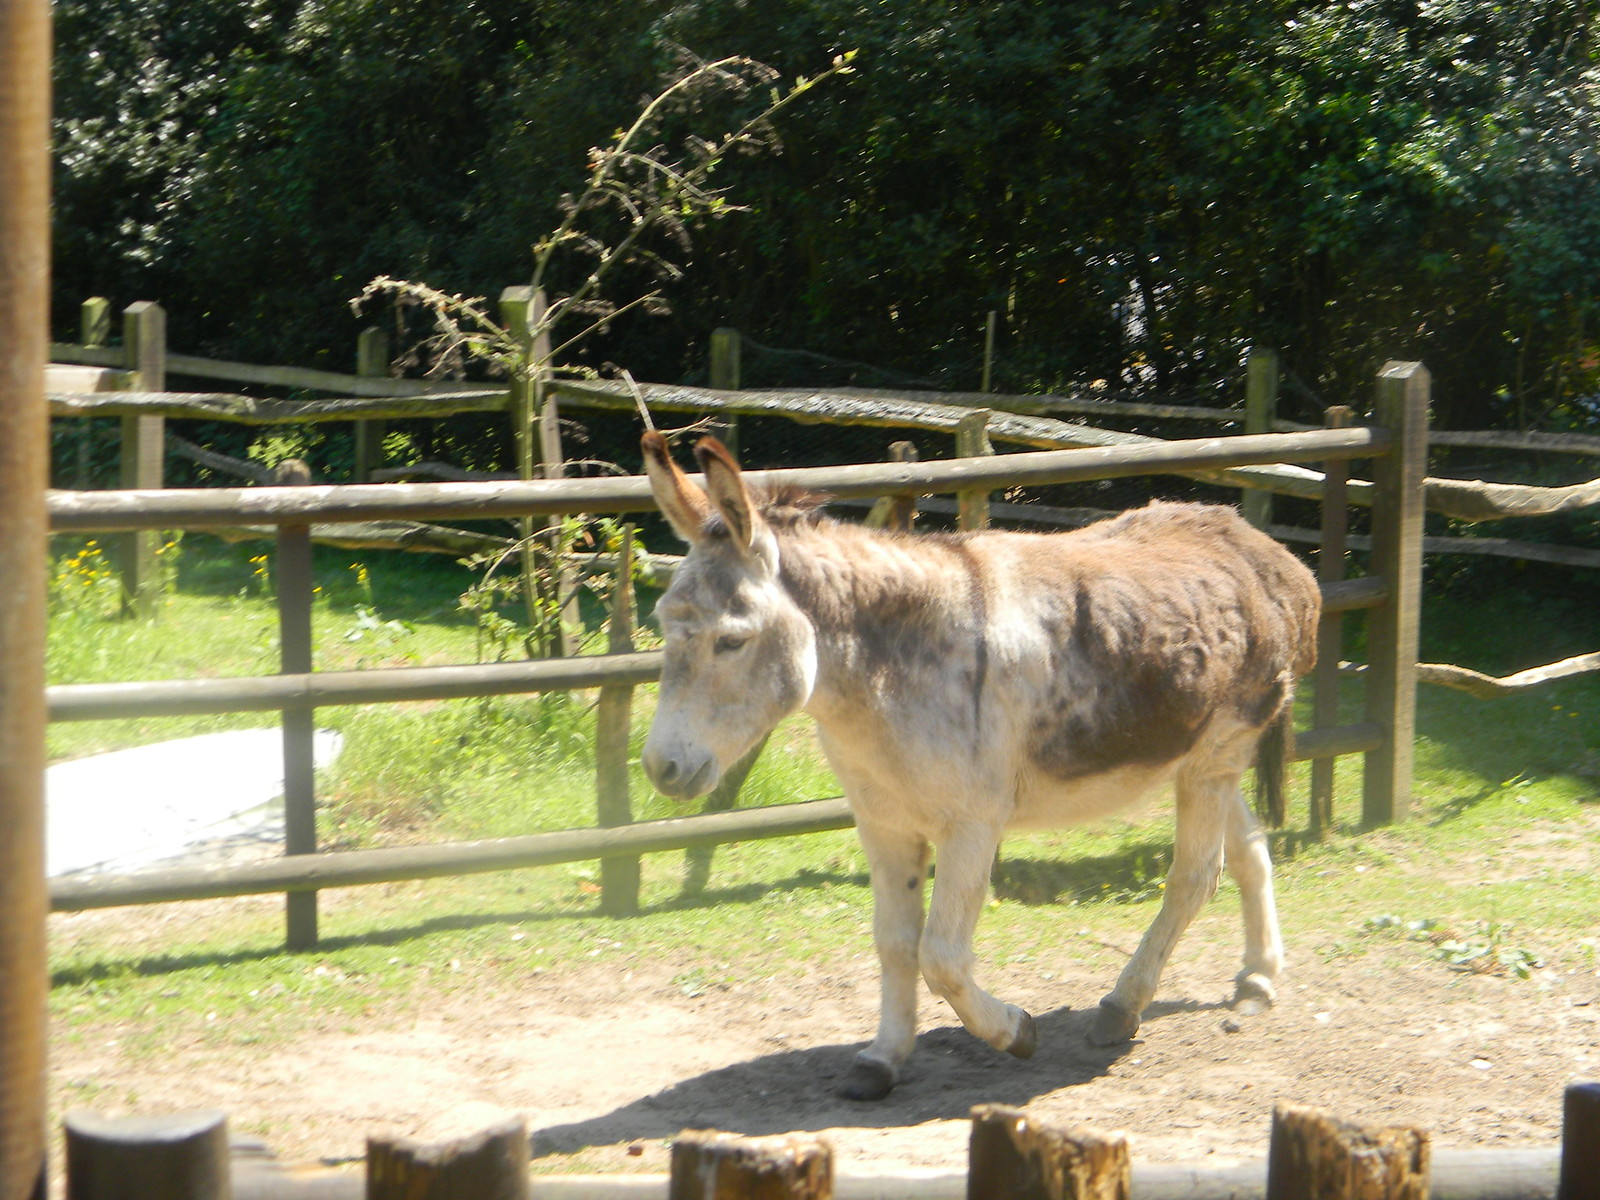 Donkey's donkey Farnham Circular The pub, The Donkey, has a couple of donkeys.